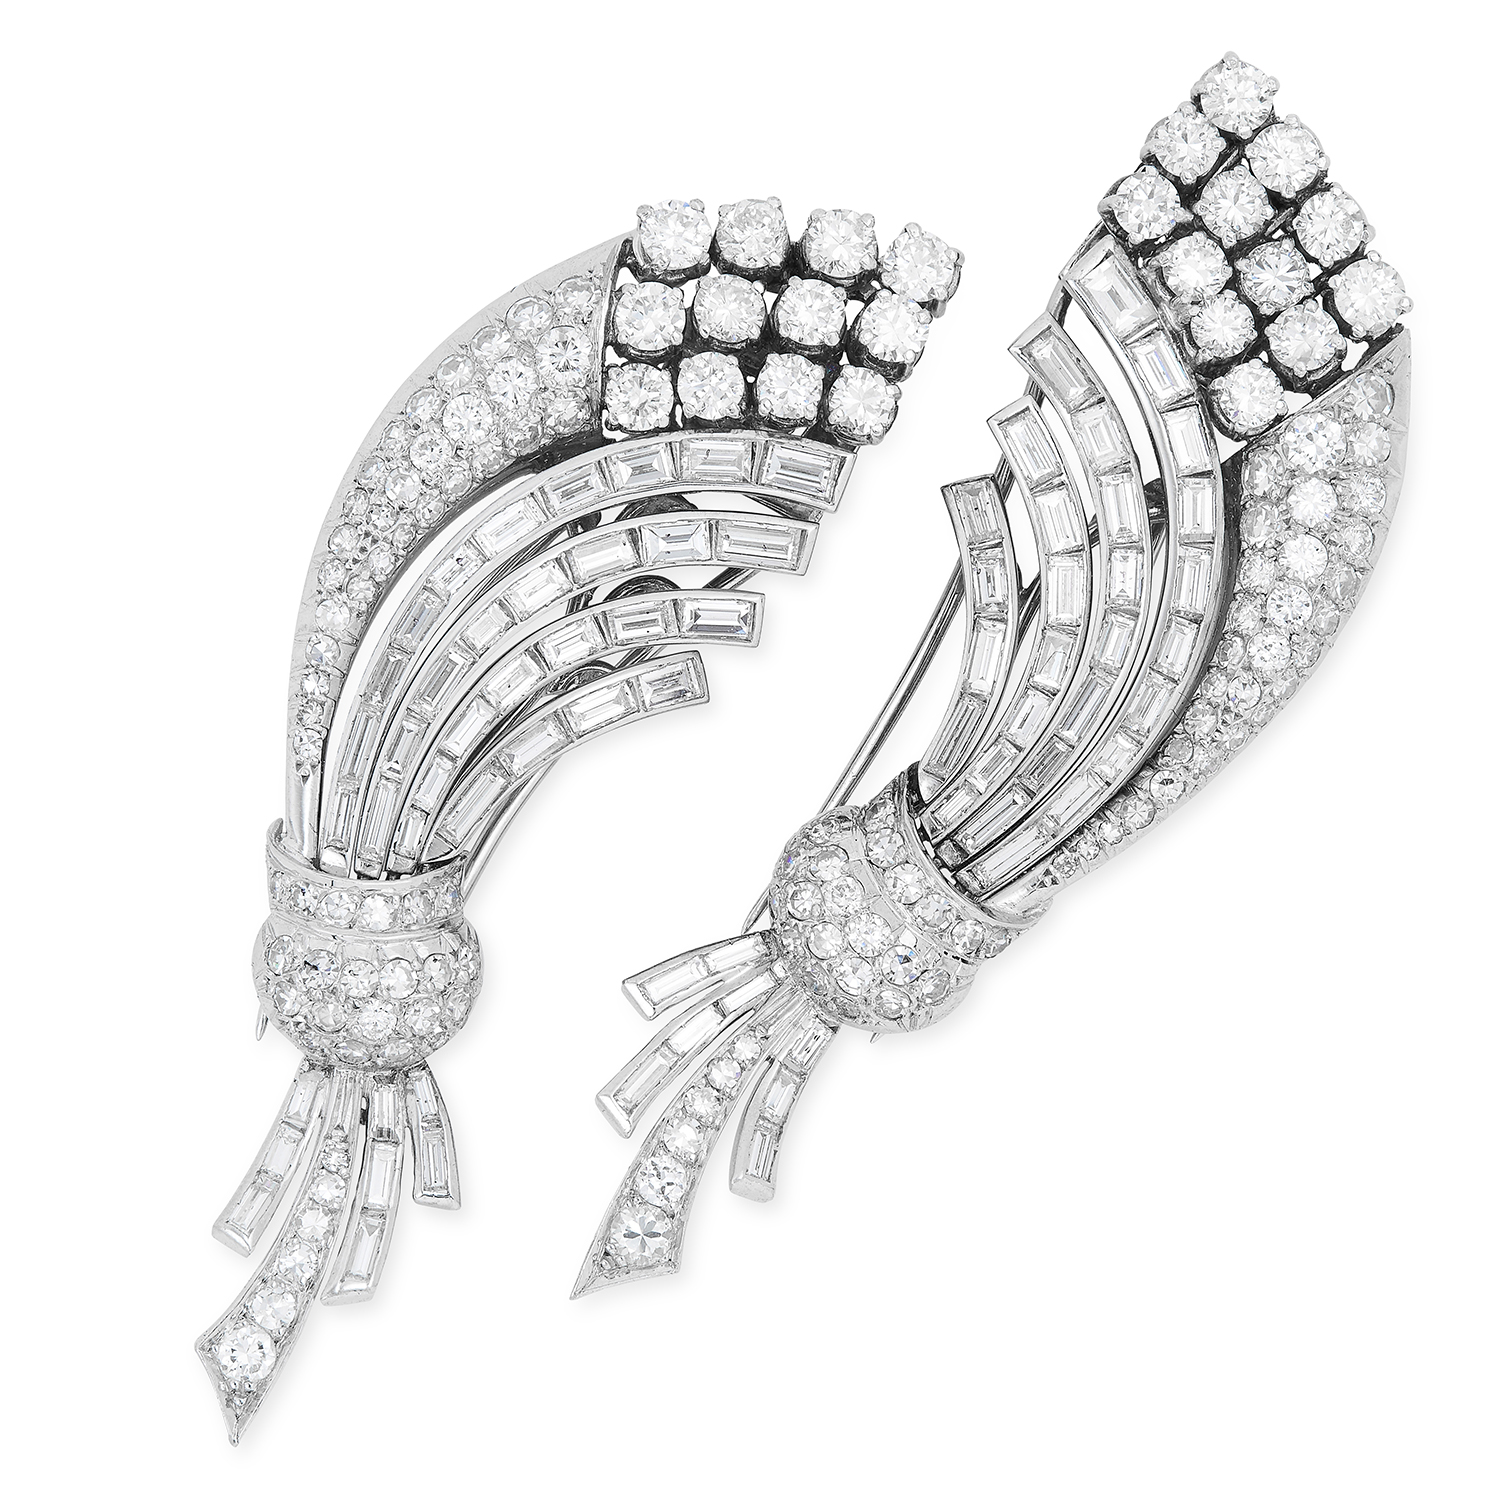 Los 61 - VINTAGE 18.00 CARAT DIAMOND CLIPS set with round and baguette cut diamonds totalling approximately